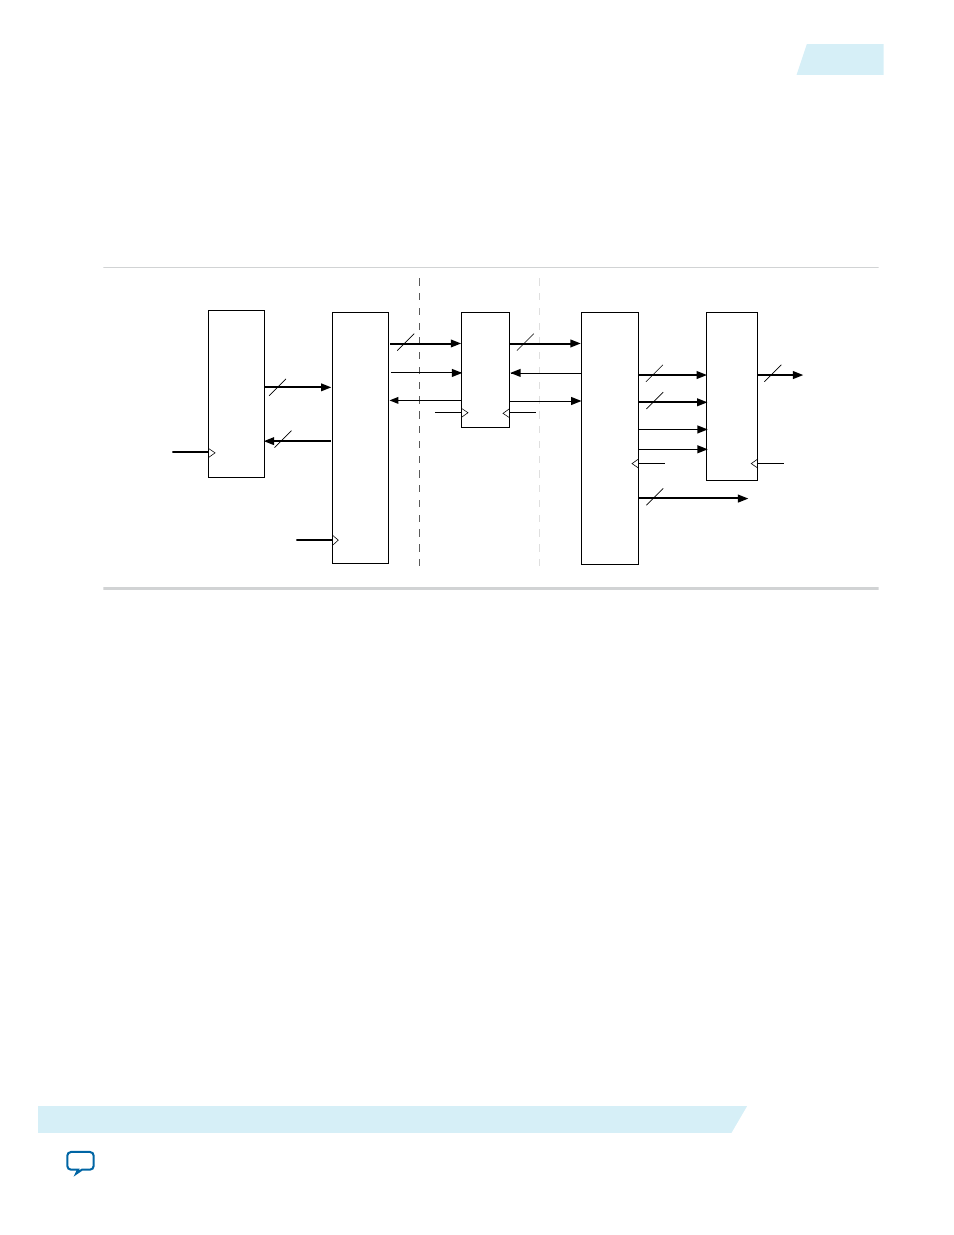 Design Example And The Read Control Logic Altera Scfifo User How To A Diagram Background Image